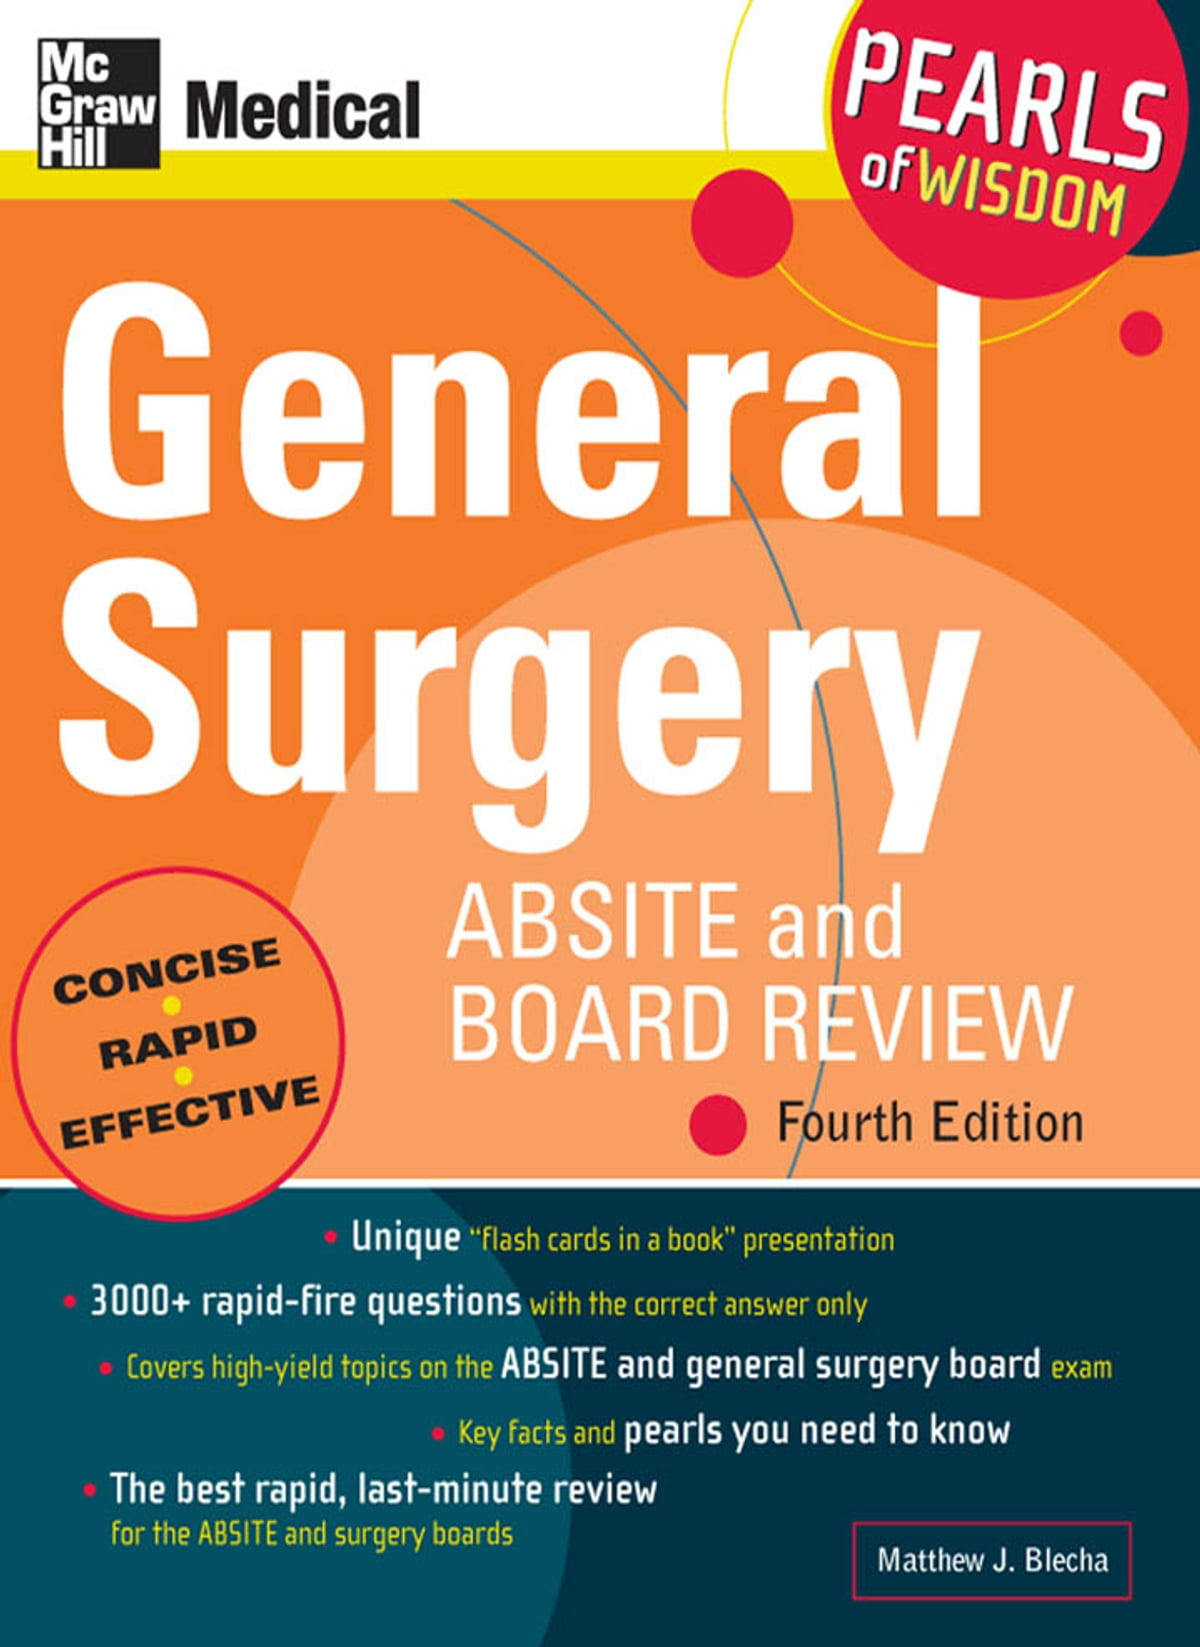 General Surgery ABSITE and Board Review: Pearls of Wisdom, Fourth Edition  ebook by Matthew J  Blecha - Rakuten Kobo